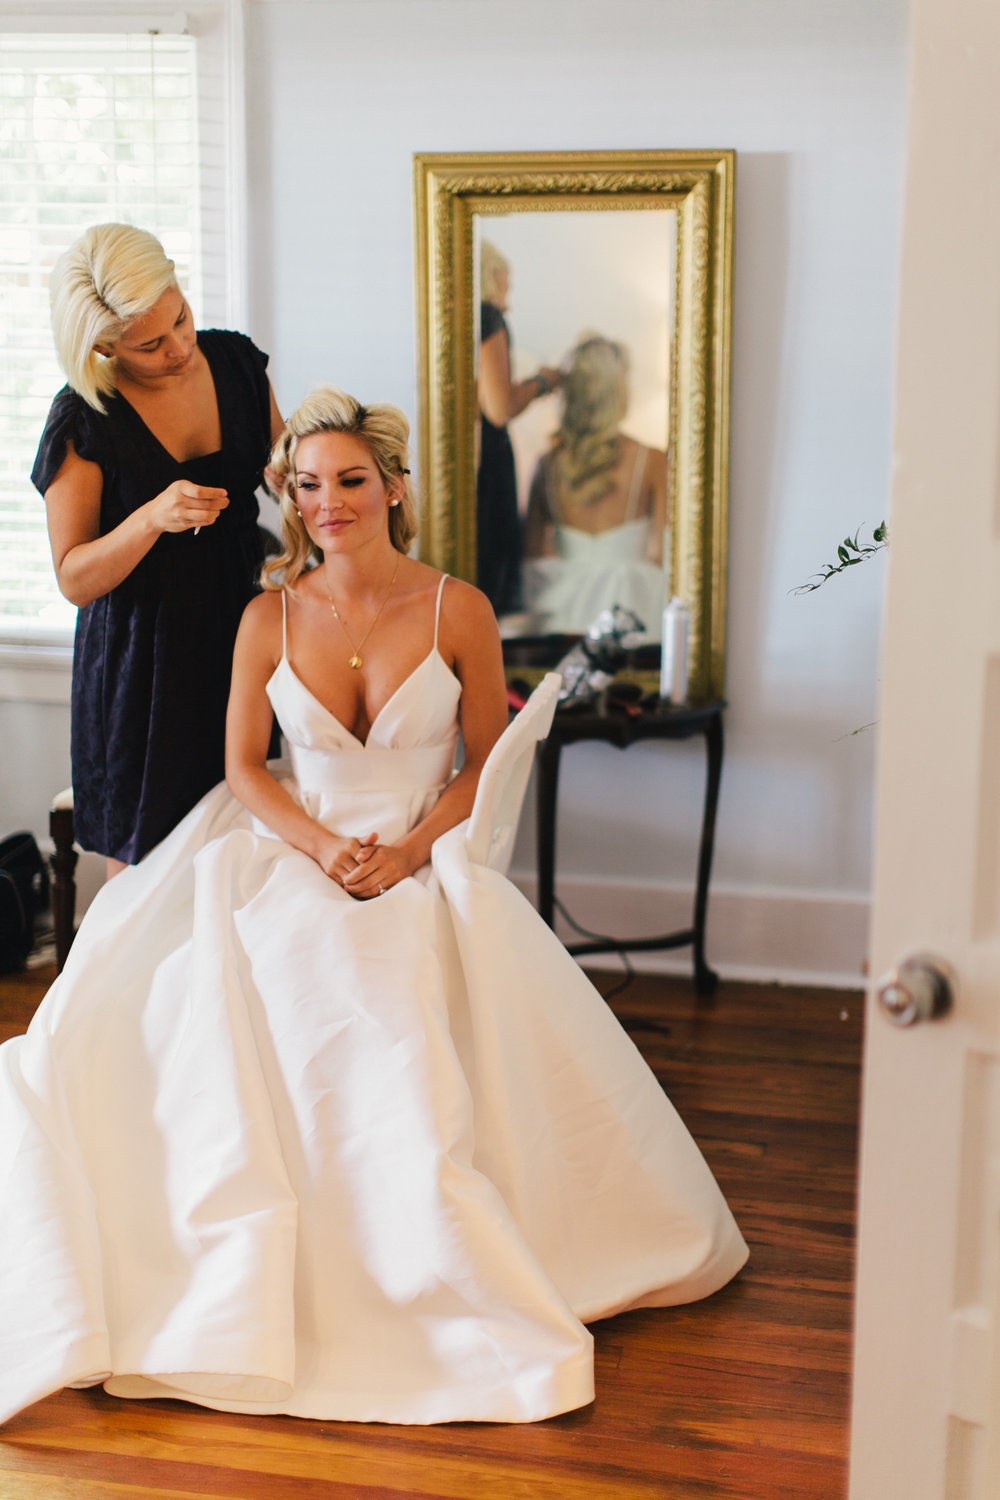 about us - charleston's best wedding hair and airbrush makeup